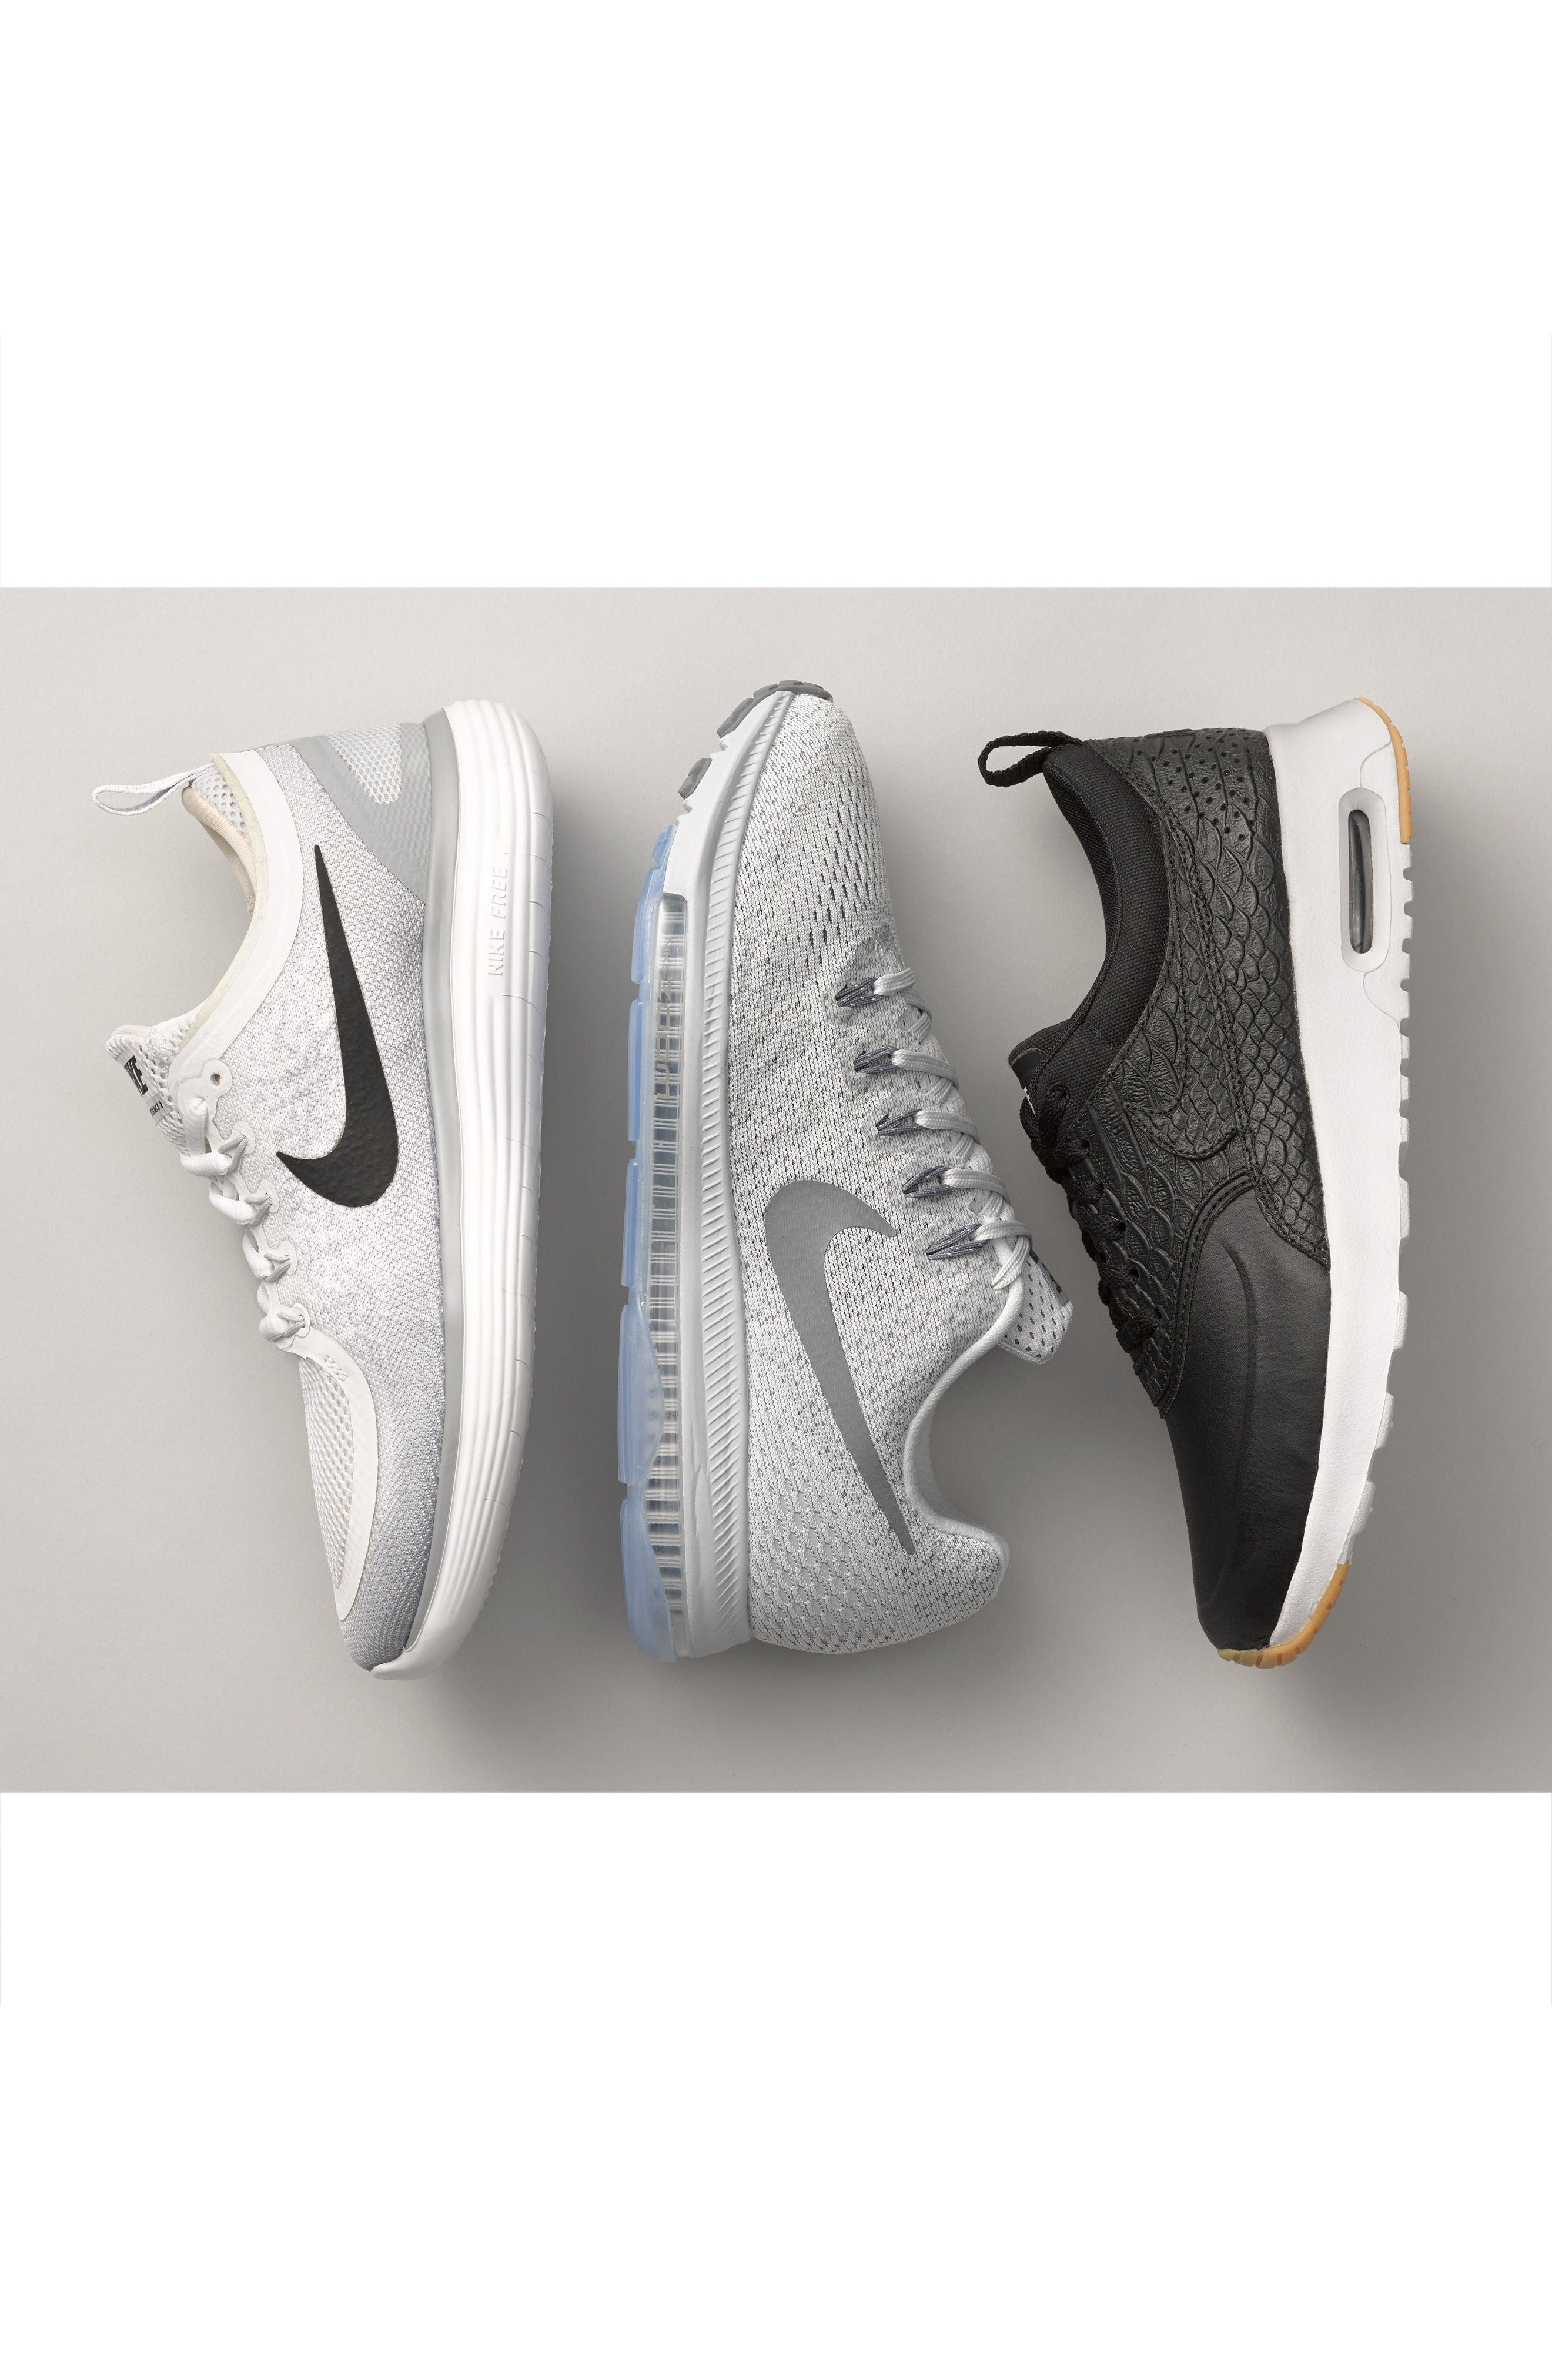 Nike Air Max Thea Sneaker Nordstrom Sale My must haves Pinterest